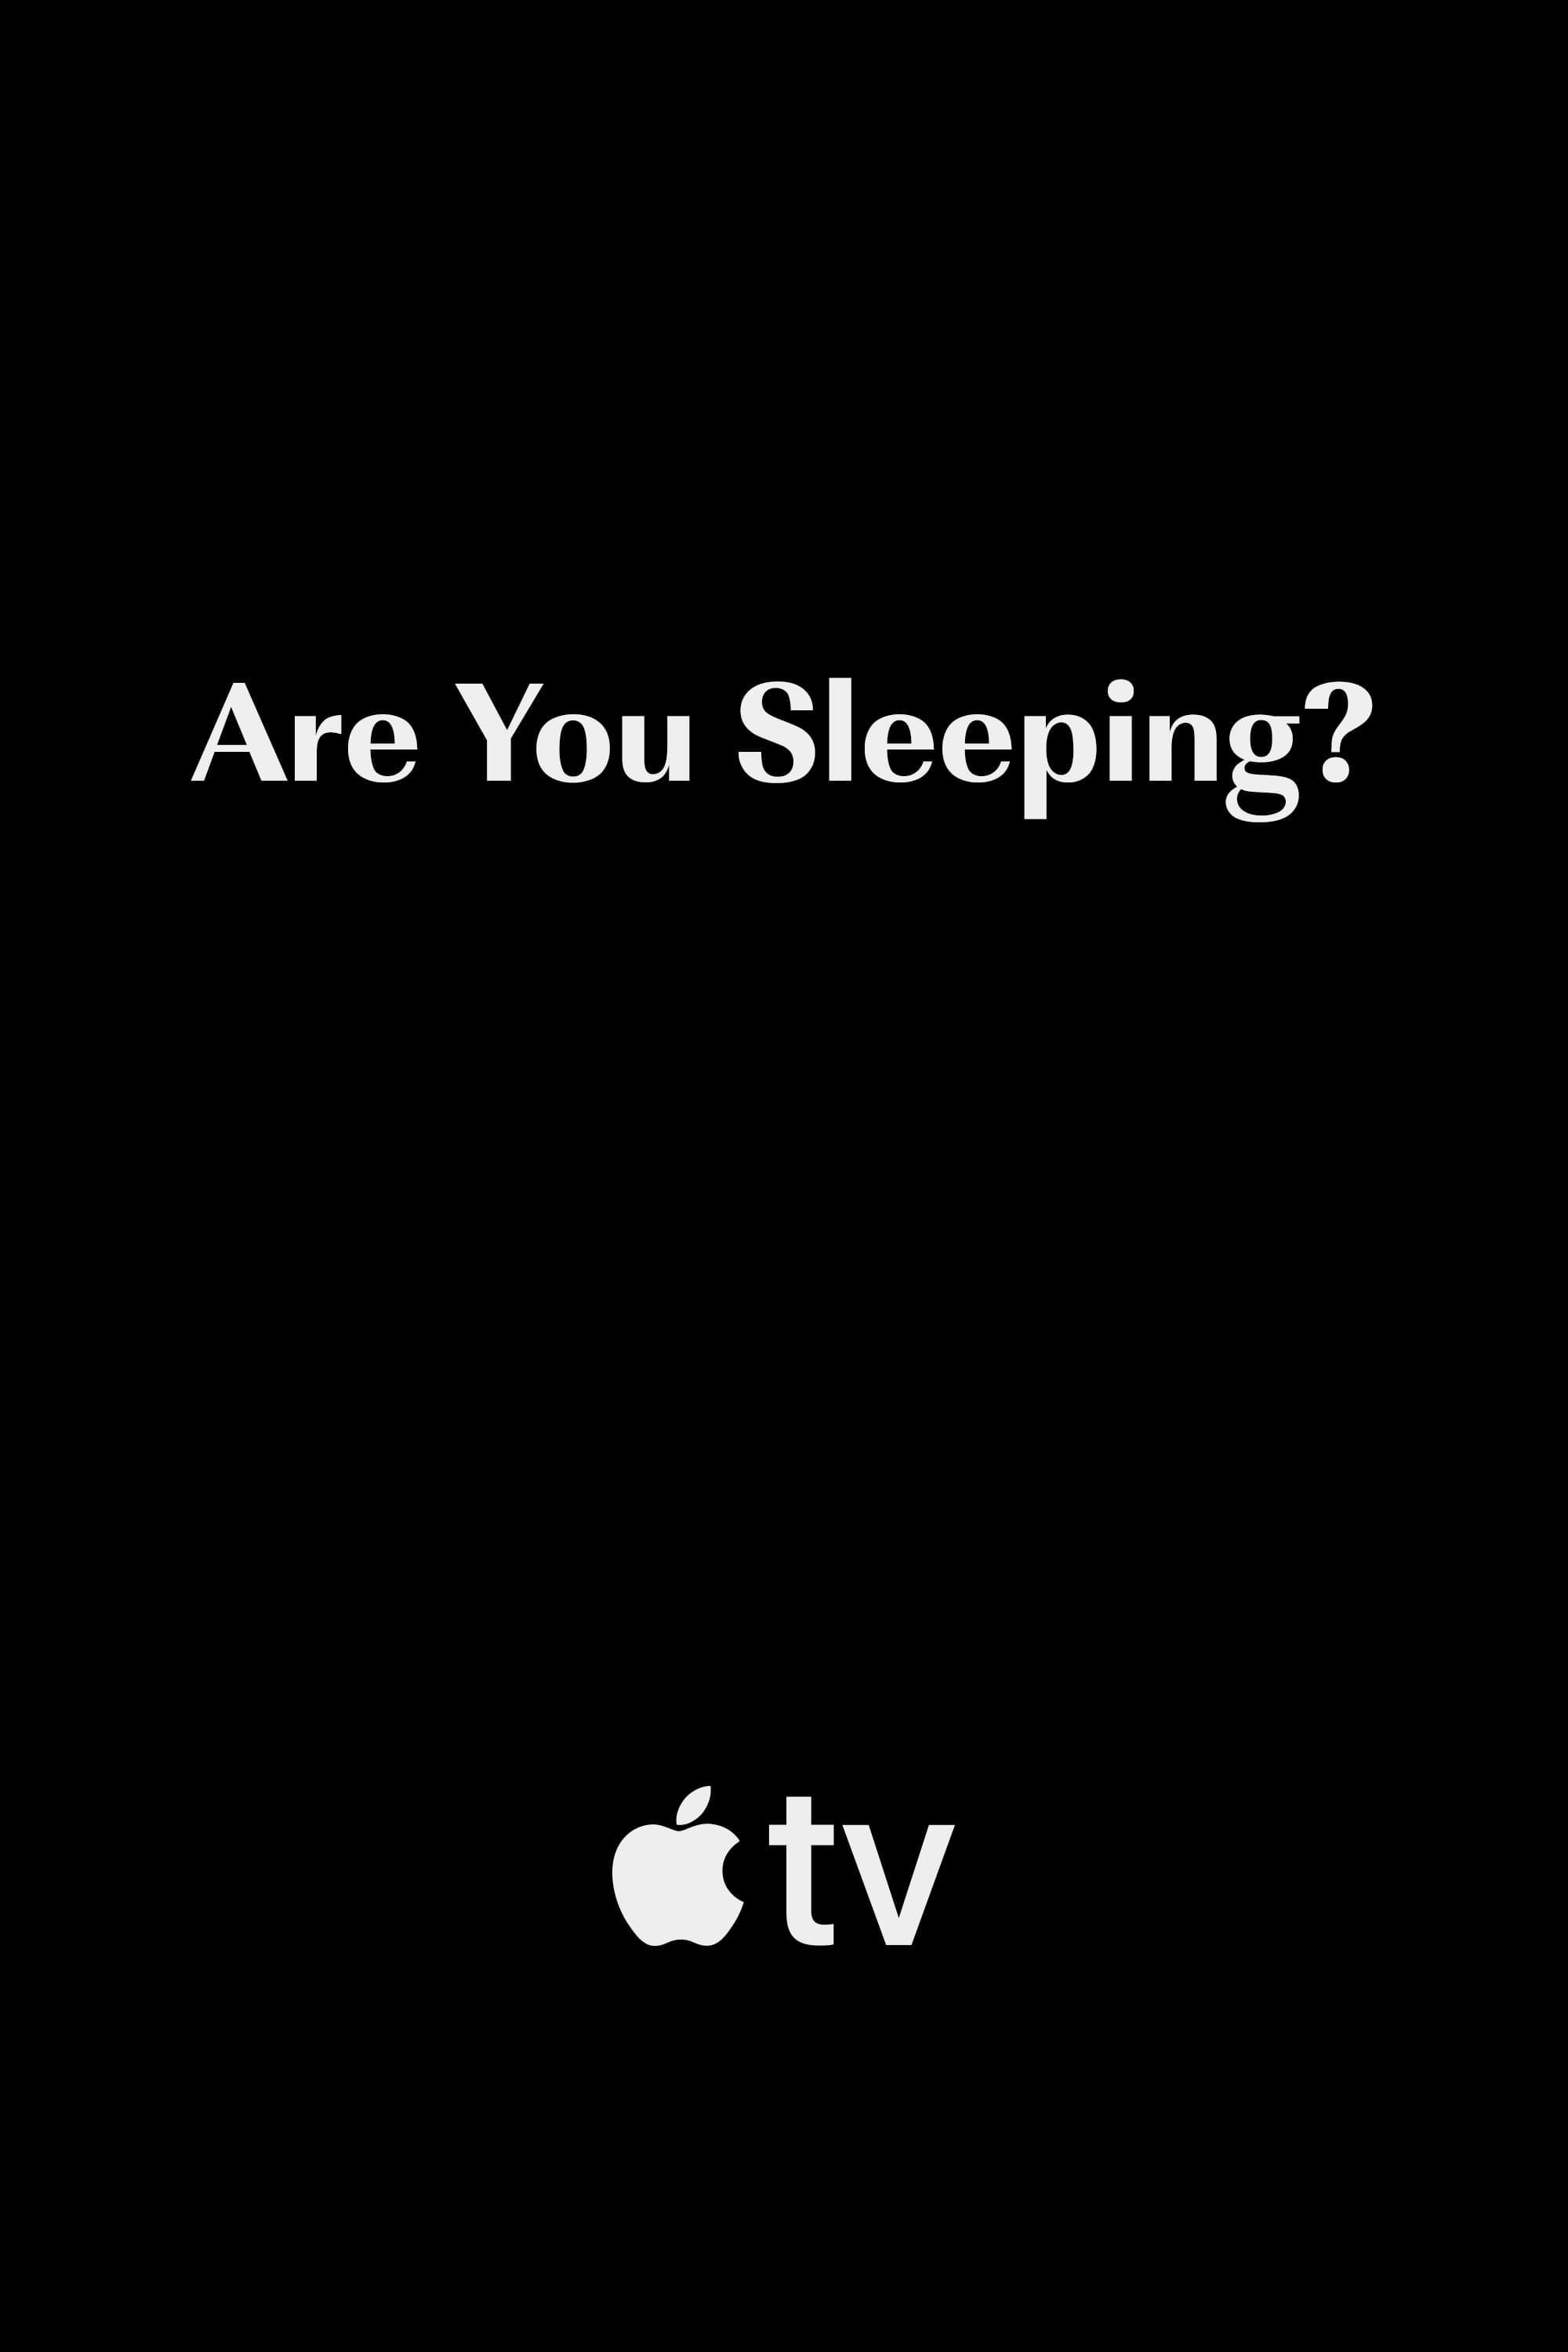 Are You Sleeping?